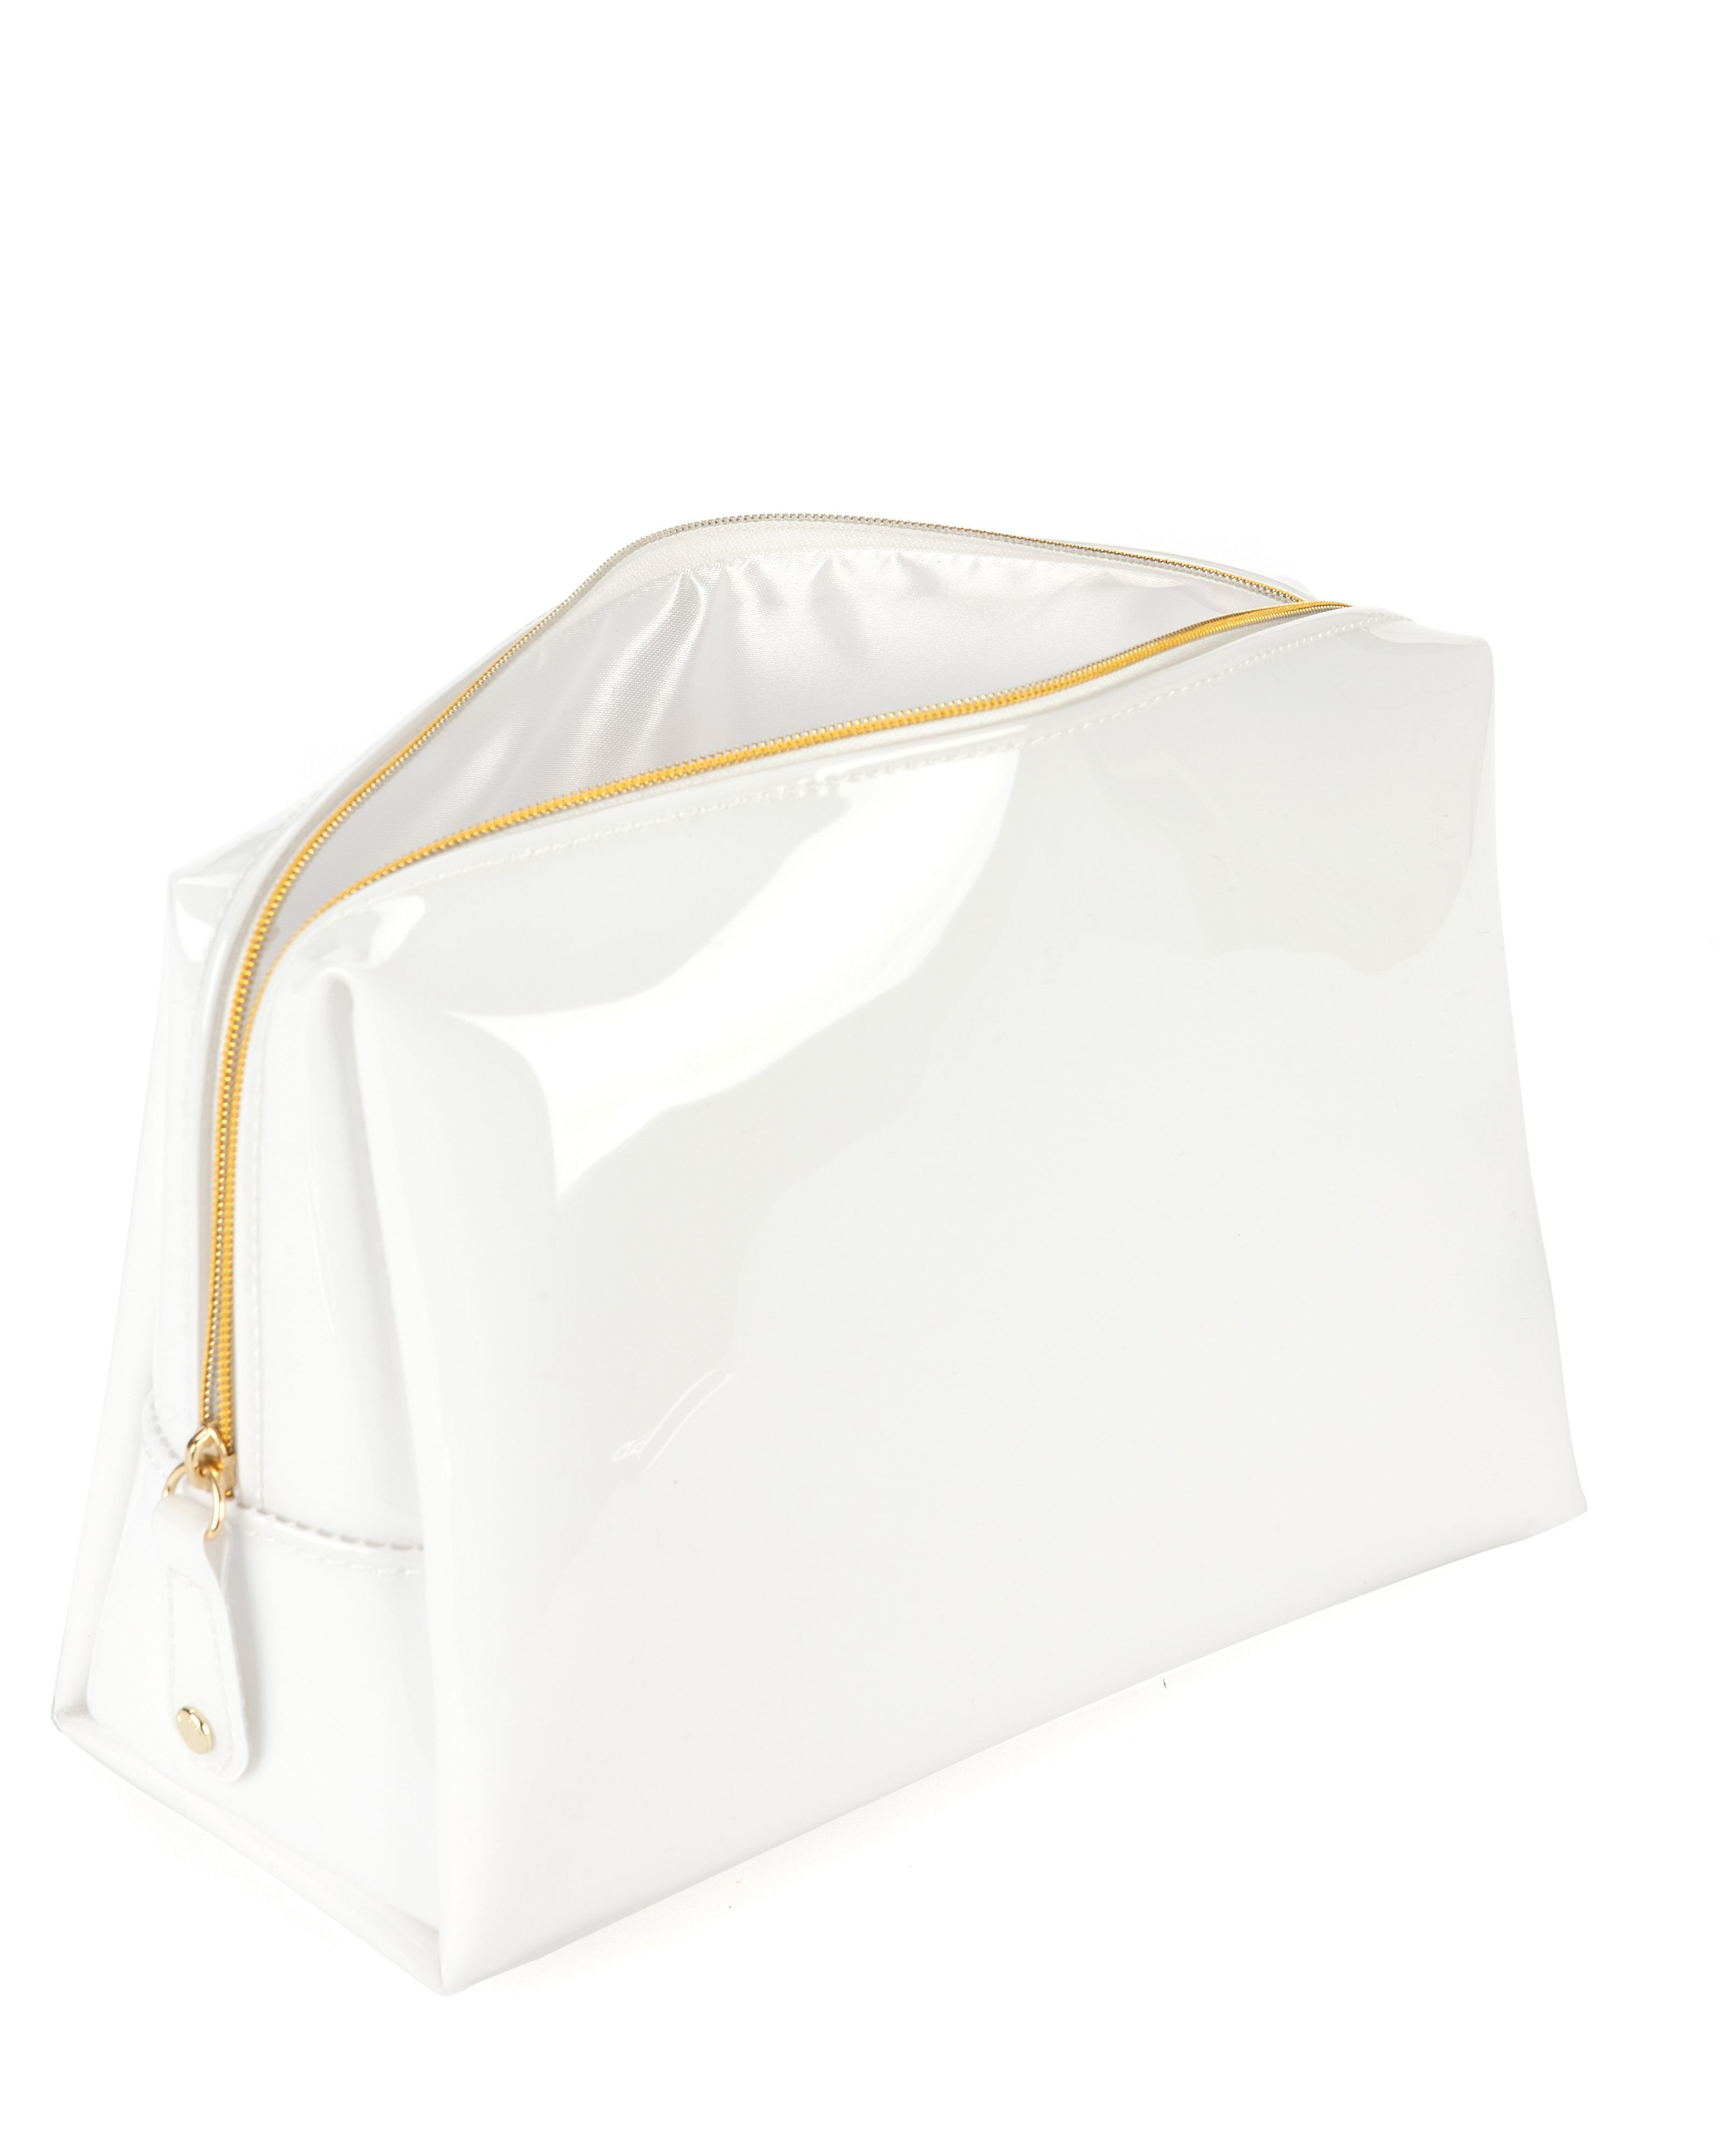 Joulour Large jewel wash bag